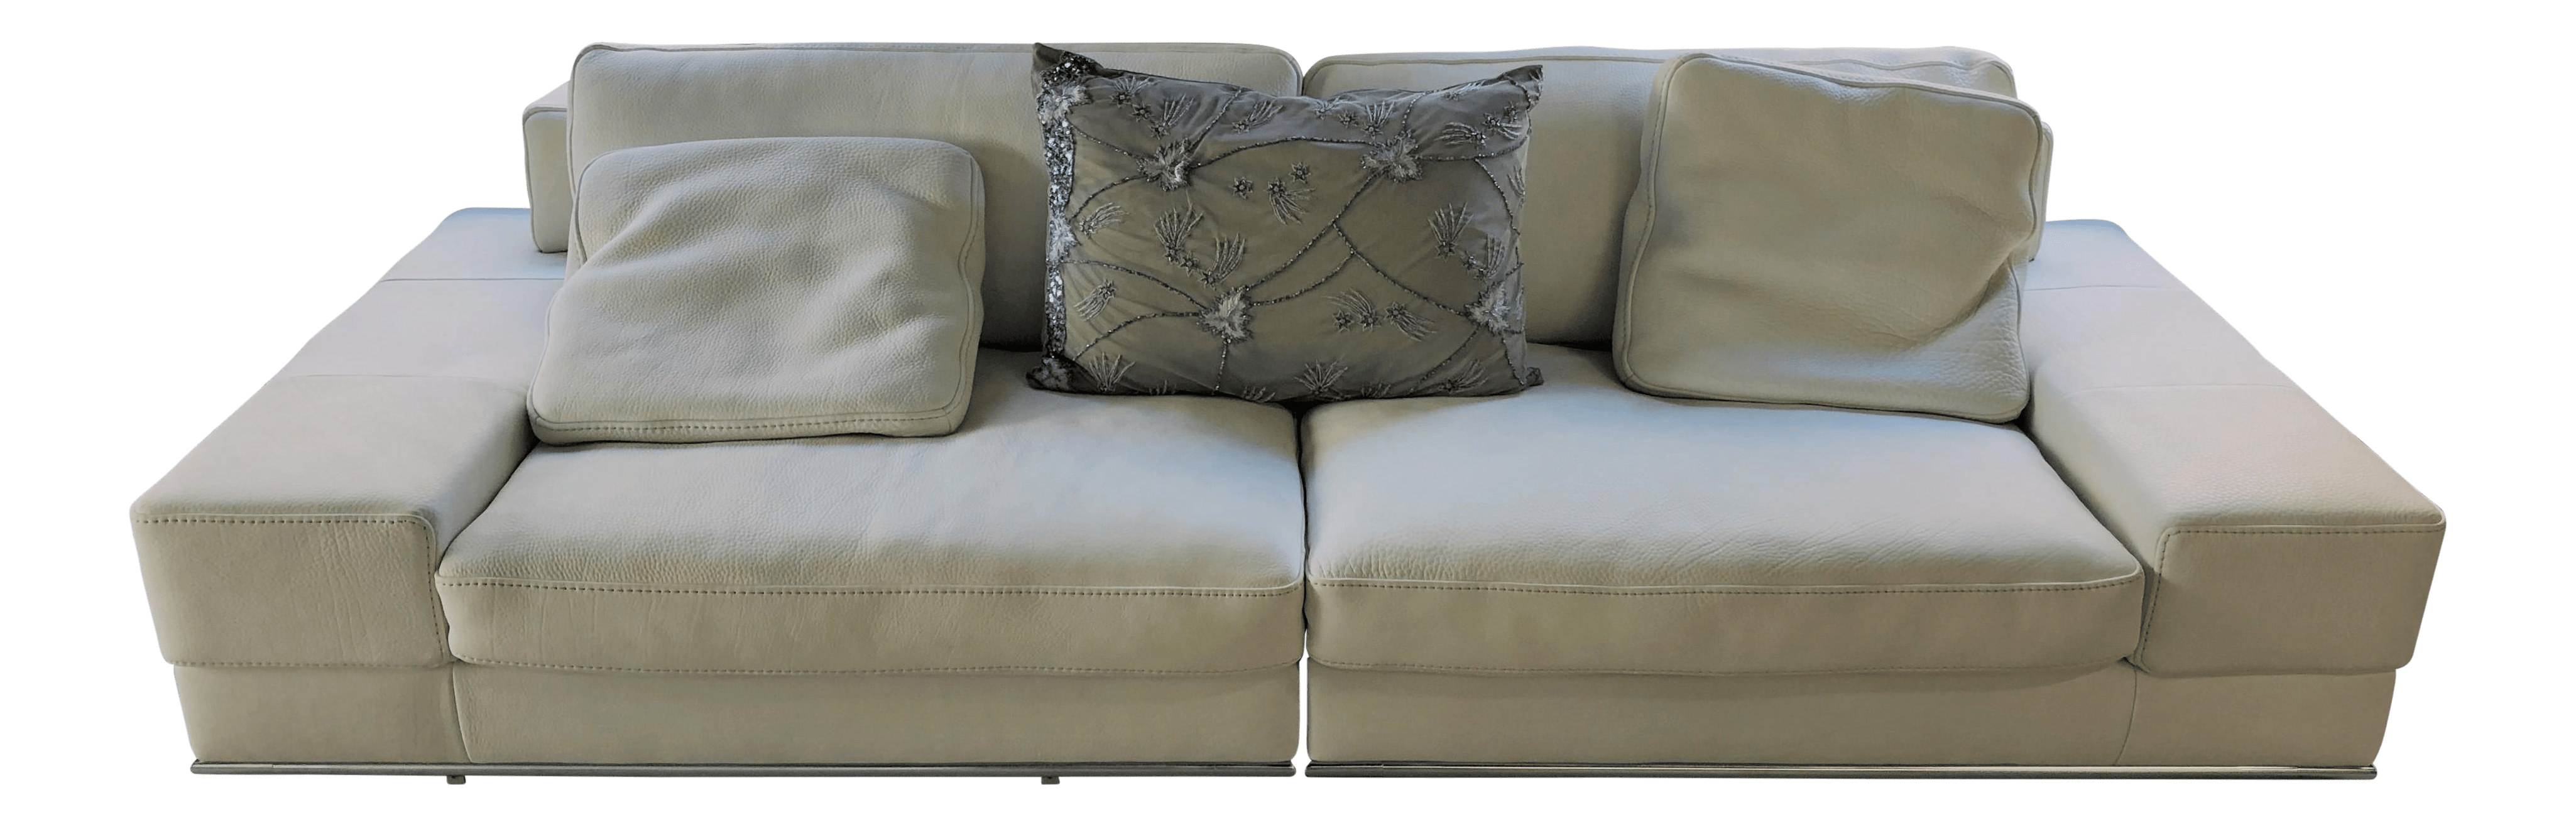 Divani Incanto Group Incanto Italian White Leather Sofa